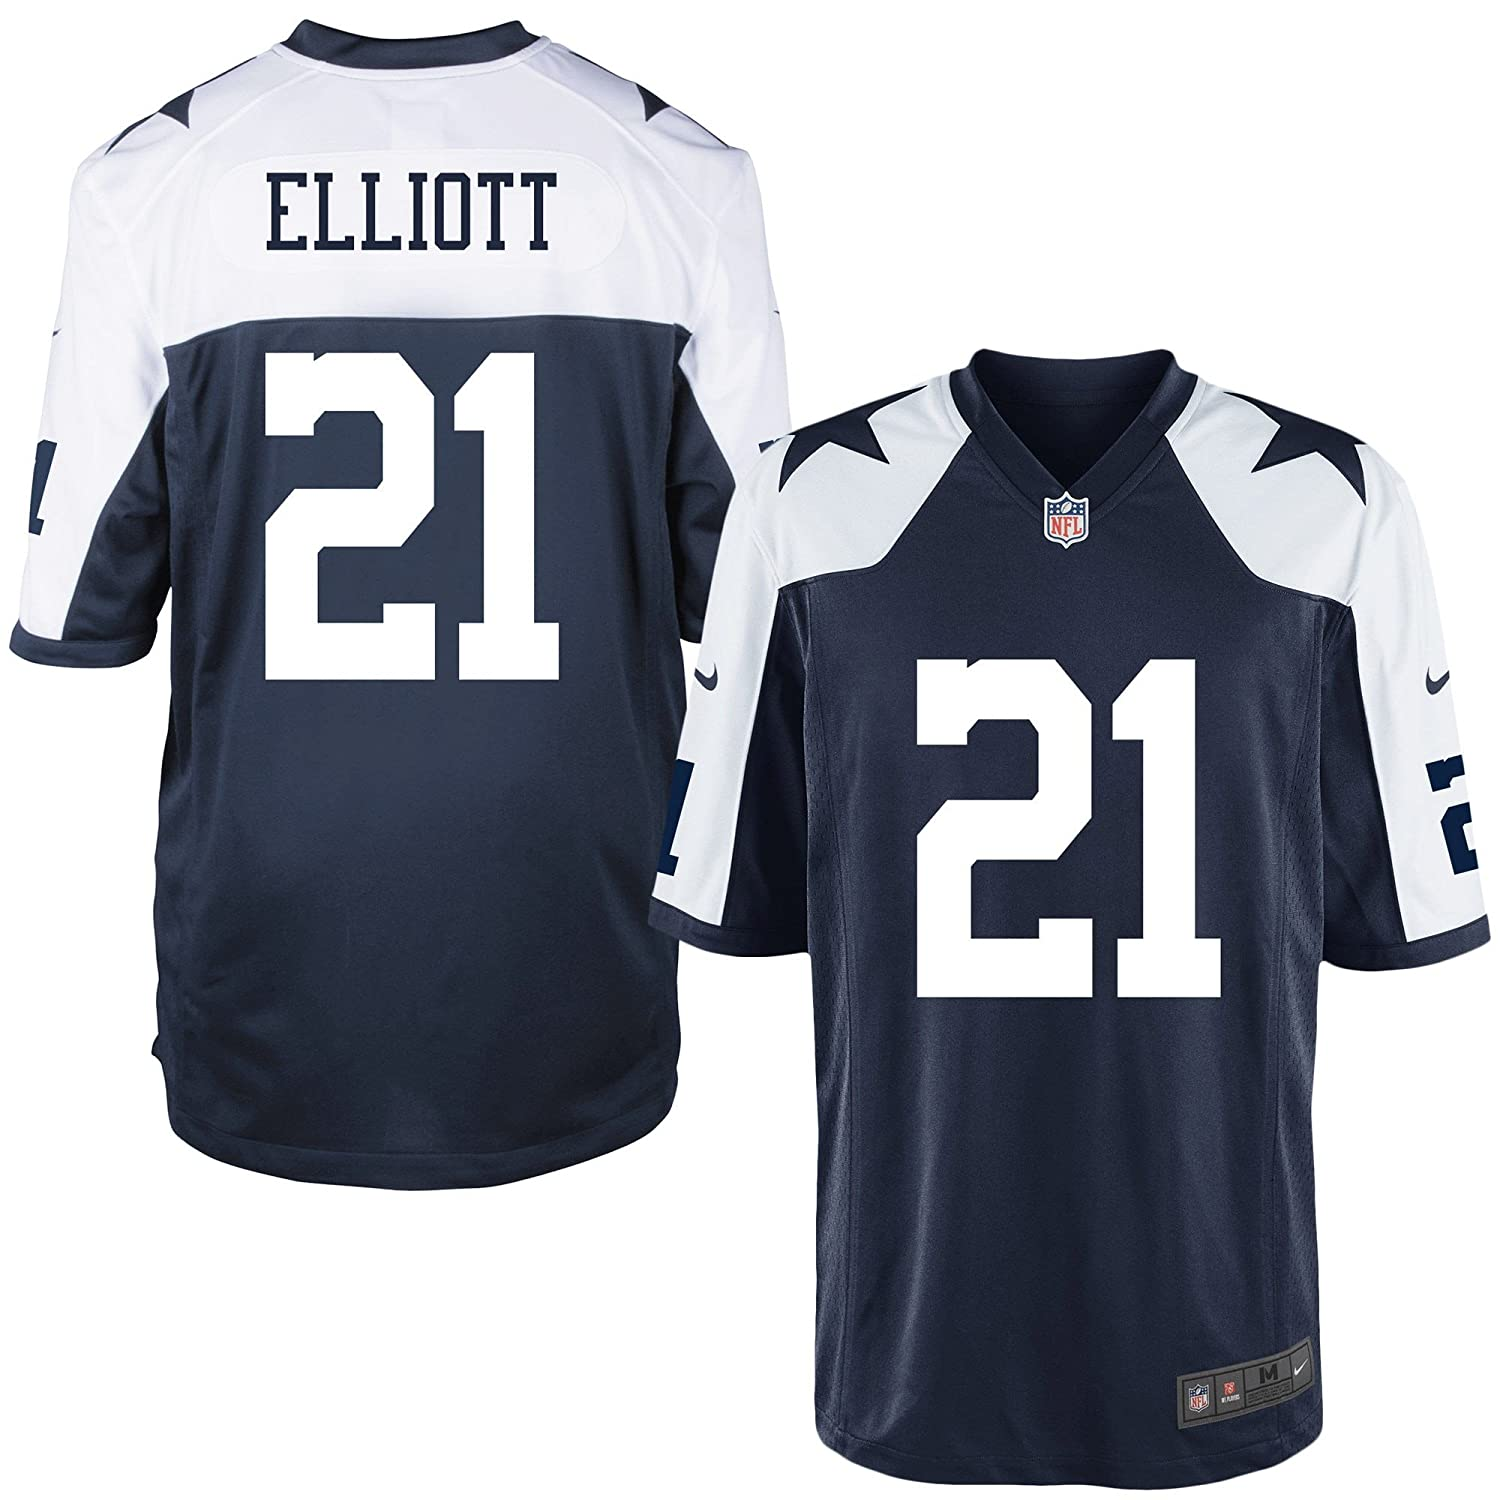 official photos dfcc0 10df7 Dallas Cowboys Ezekiel Elliott Nike Game Replica Throwback Jersey